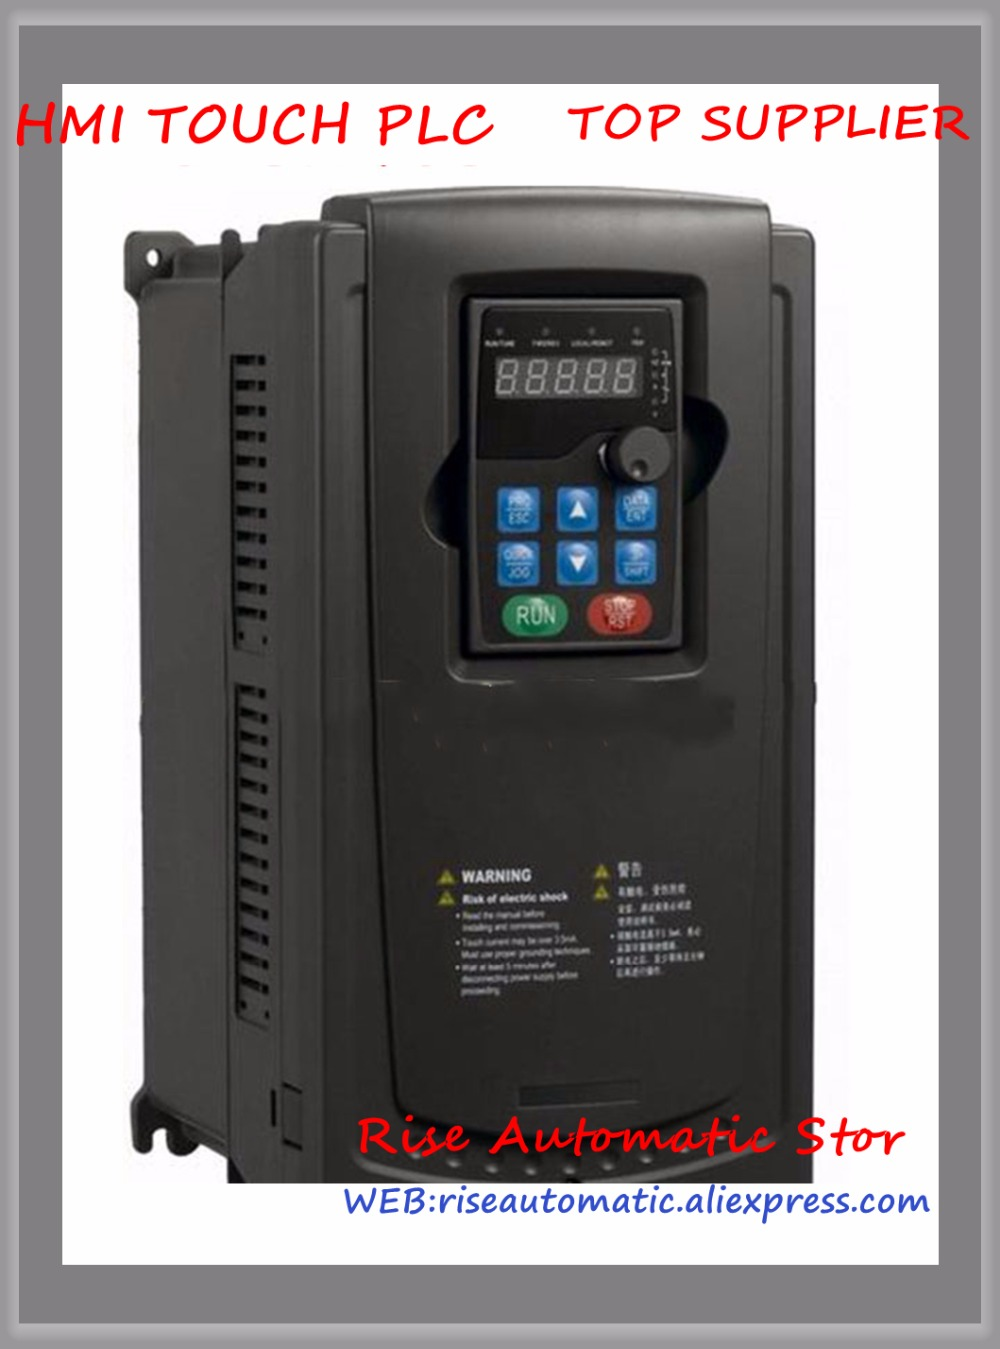 GD200-004G/5R5P-4 Inverter VFD frequency AC drive new 3-phase 400V 4/5.5KW 13.5/19.5A InputGD200-004G/5R5P-4 Inverter VFD frequency AC drive new 3-phase 400V 4/5.5KW 13.5/19.5A Input